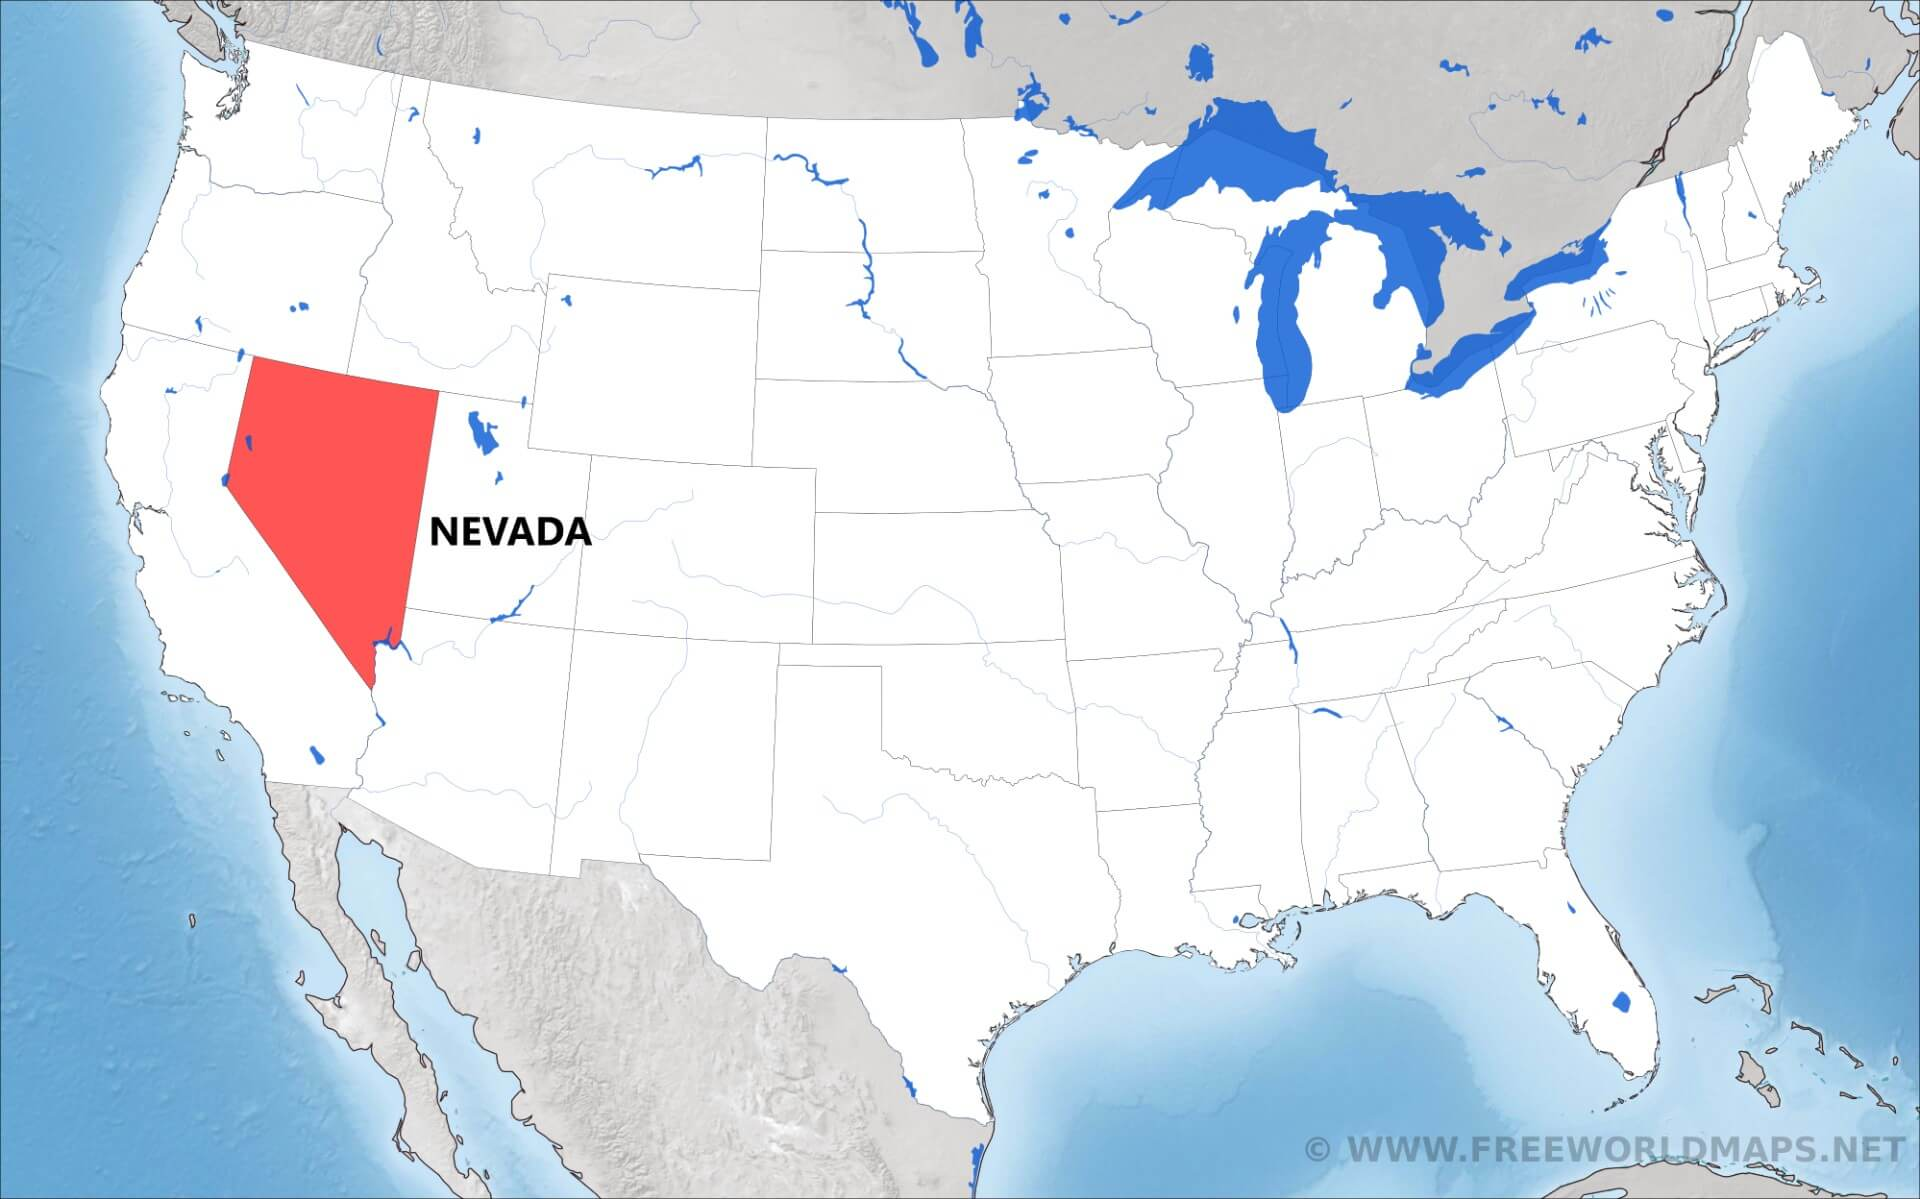 where-is-nevada-hd Detailed Map on italy map, detail map, south korea map, standard map, indonesia map, full map, india map, interactive map, complete map, area map, places to visit map, topographic map, road map, good map, iceland land map, world map, fun map, kapingamarangi island map, fairfax alaska map, texas highway map,